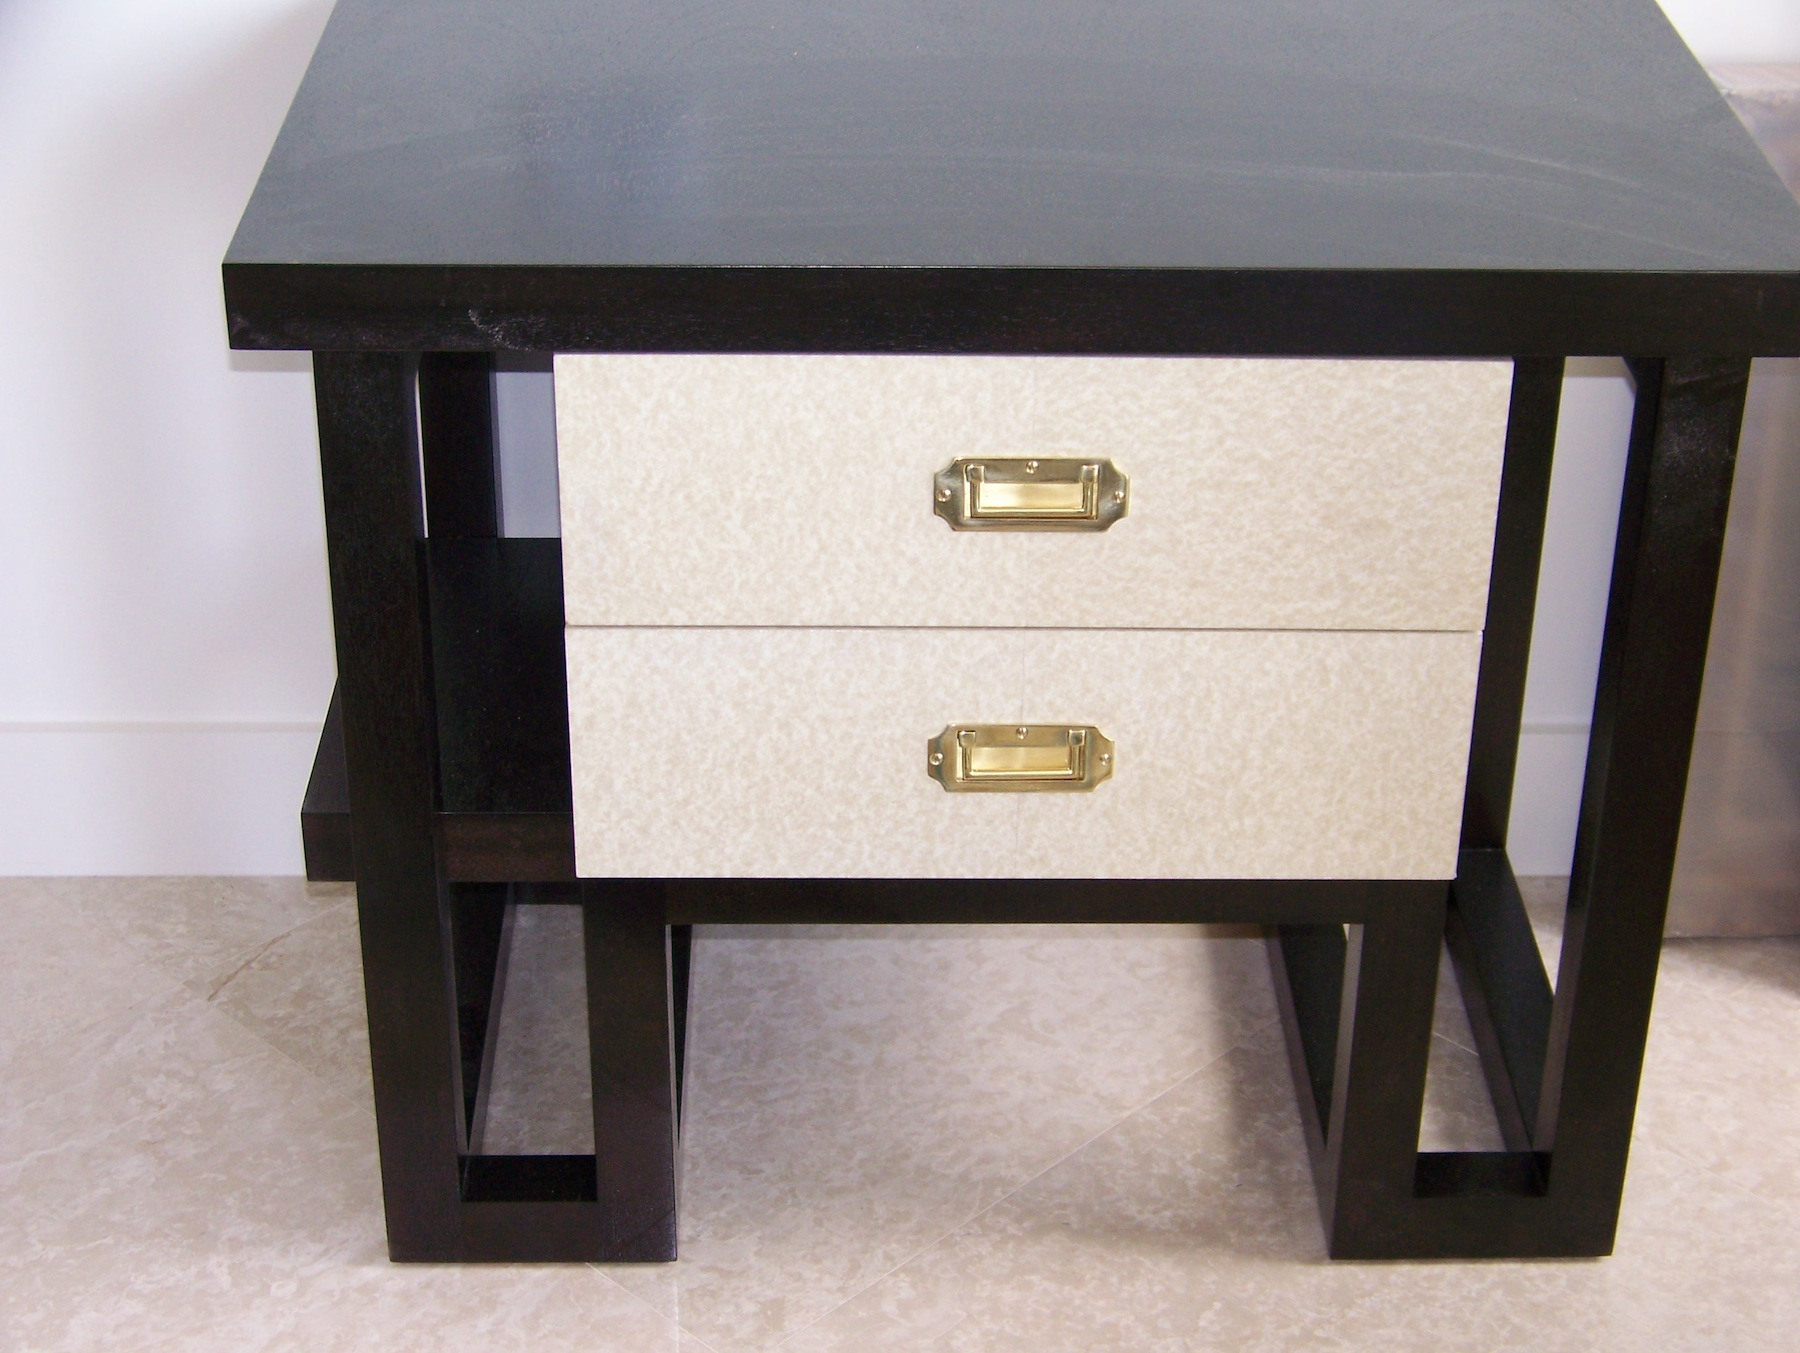 Lacquer parchment end table - New York City